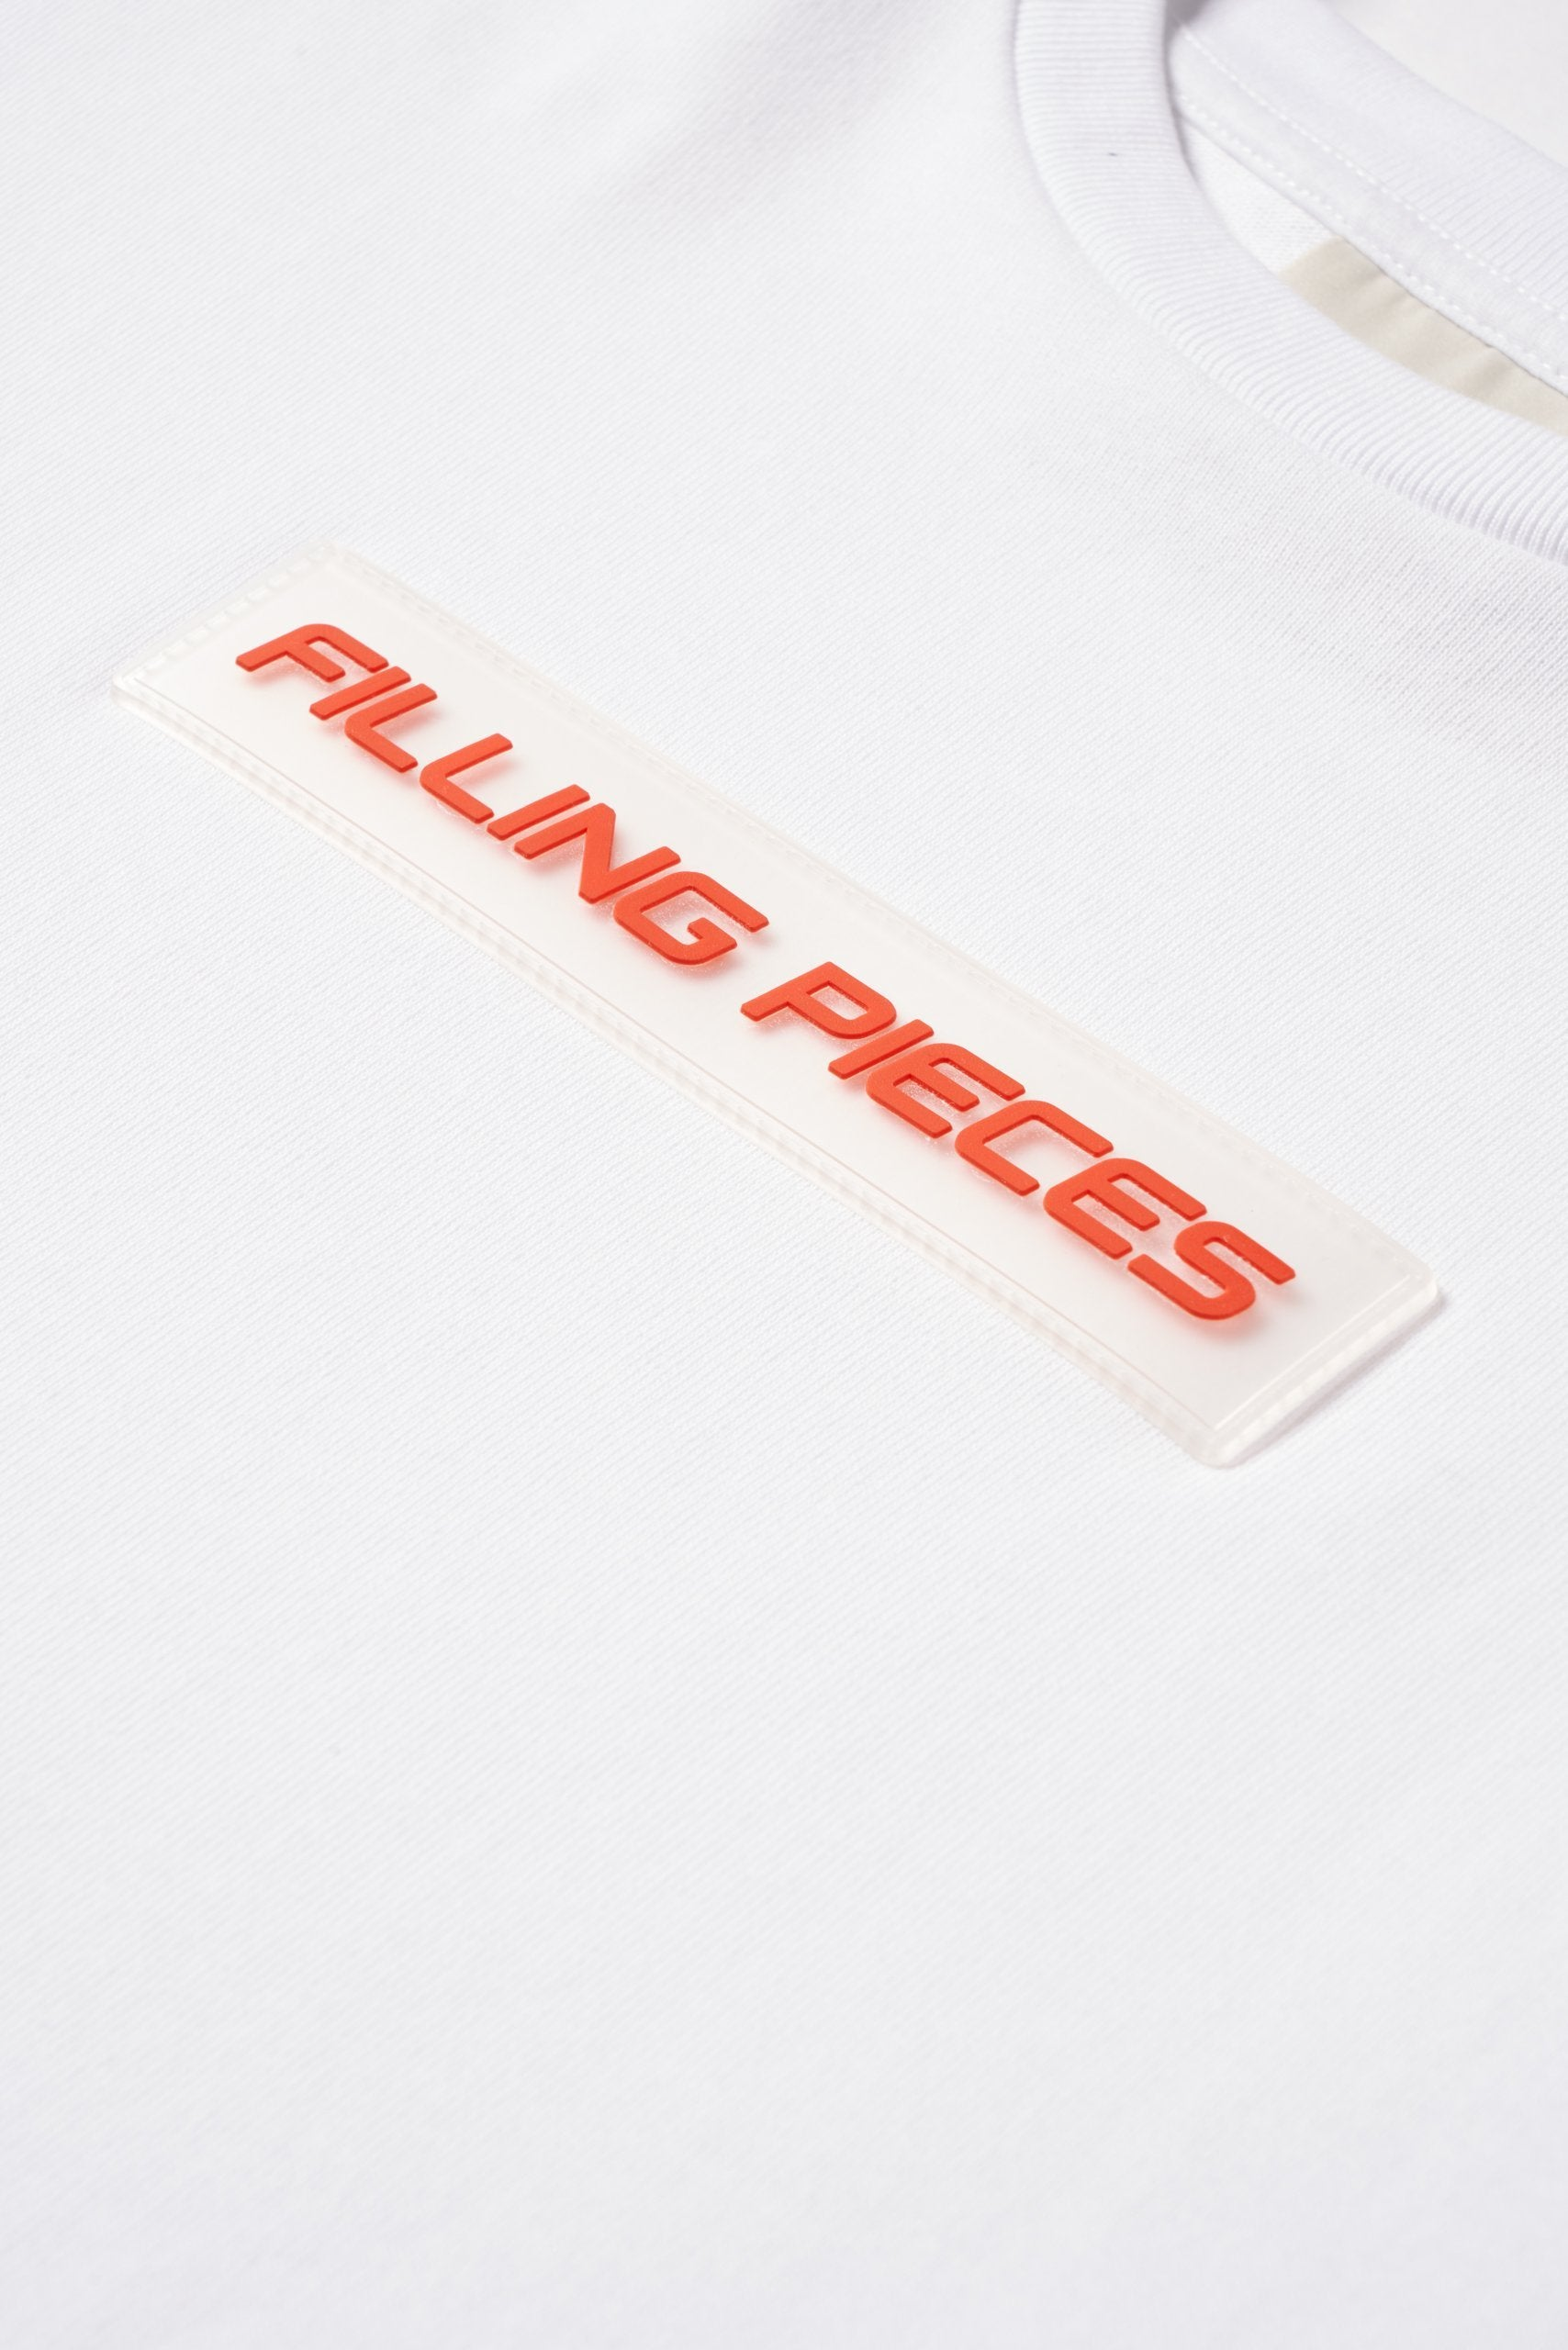 Graphic Tee White - Orange Patch - men